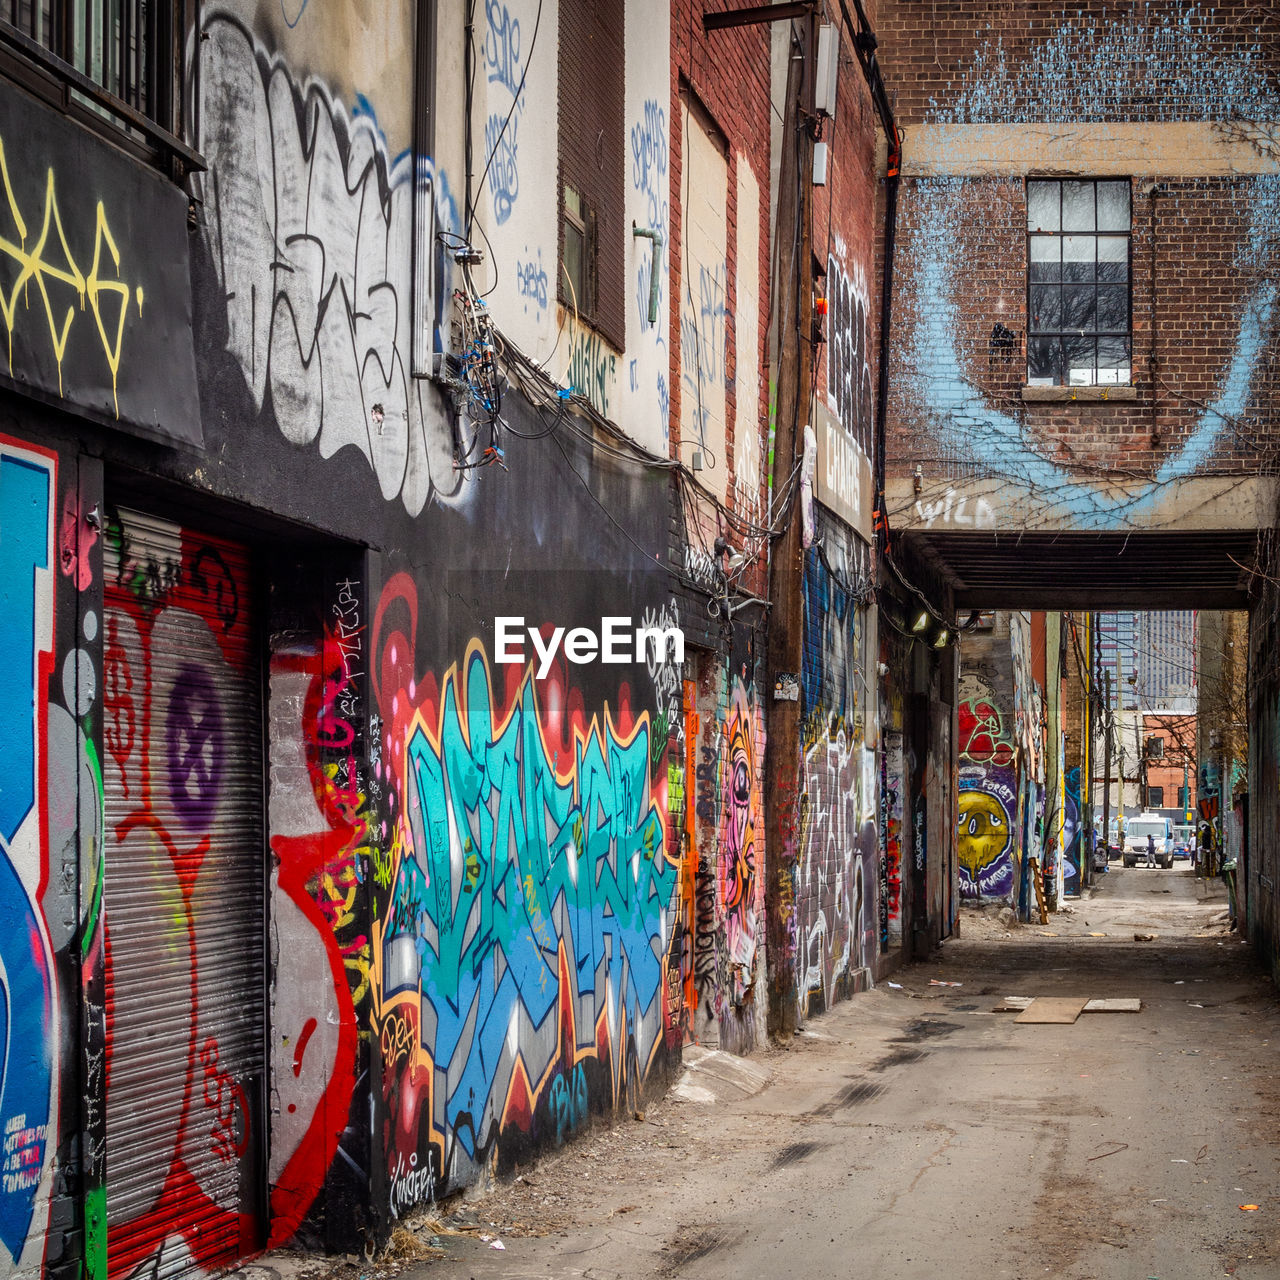 graffiti, architecture, building exterior, built structure, creativity, multi colored, art and craft, building, street art, city, wall - building feature, no people, day, street, outdoors, text, residential district, wall, alley, mural